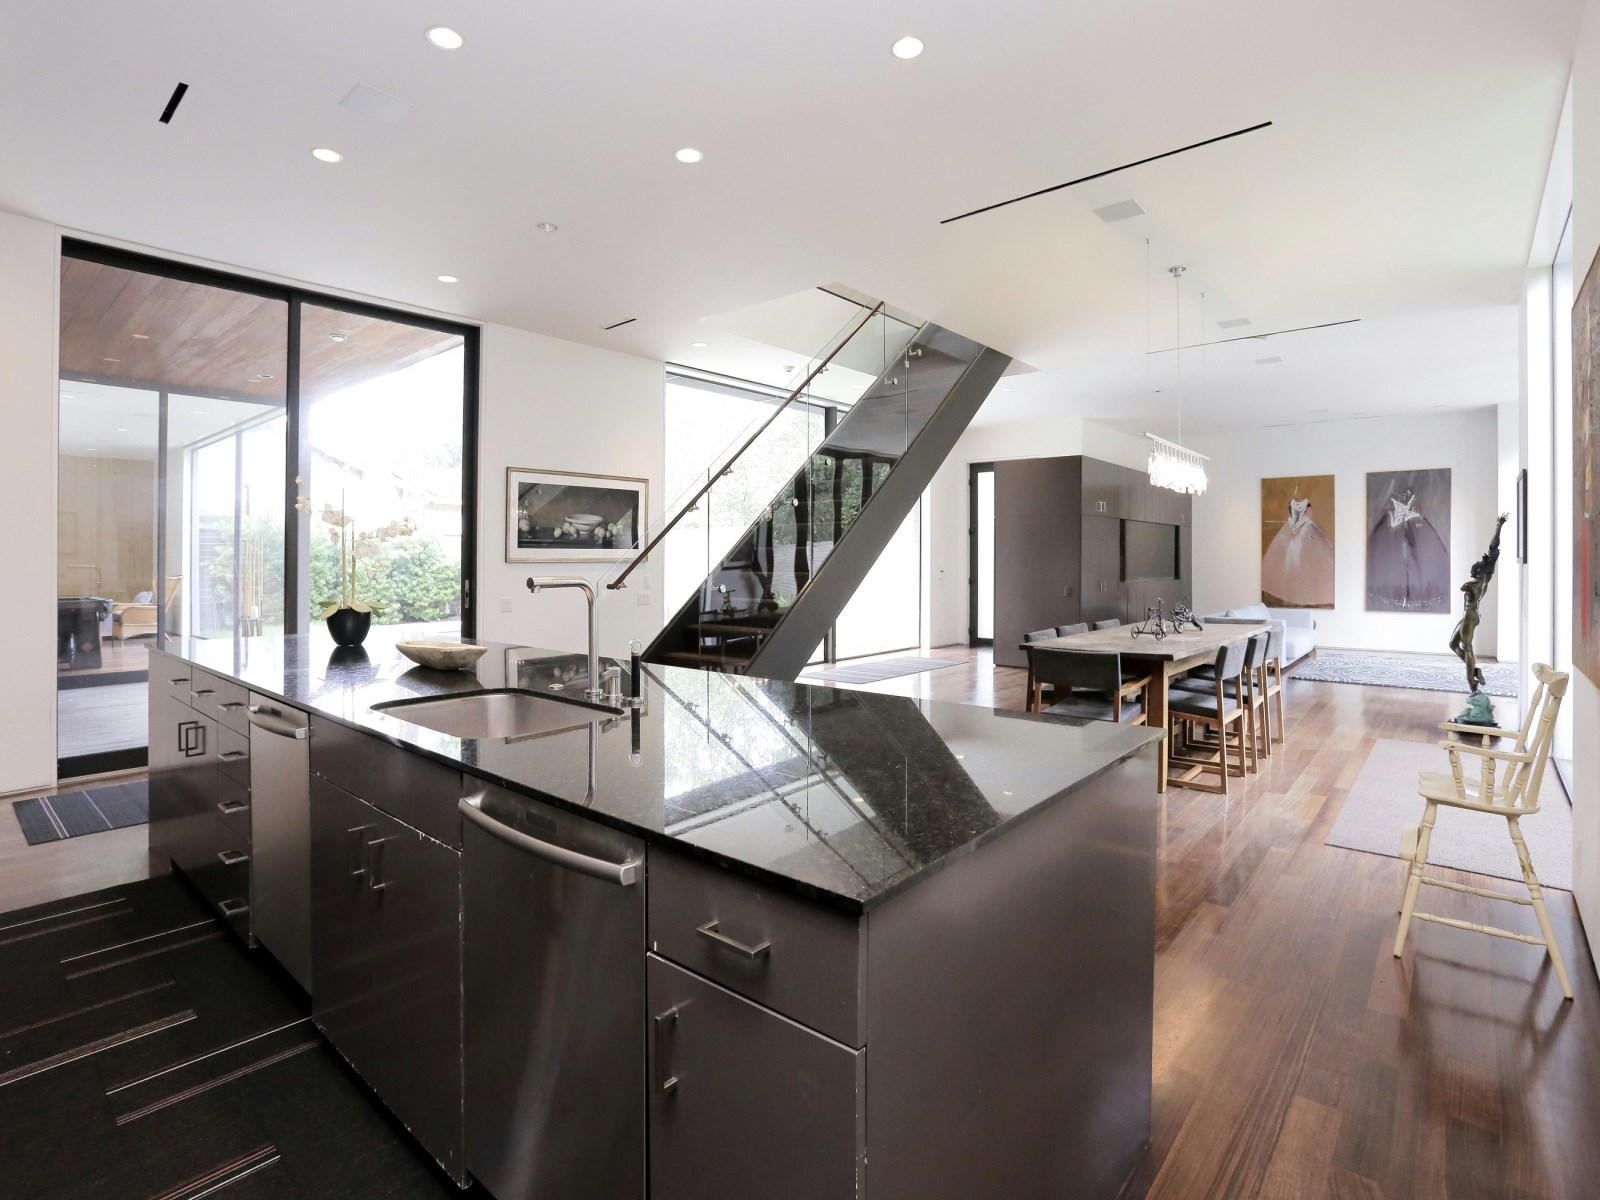 Mixing Glossy And Matte In The Kitchen - A home with formidable architecture and a light interior